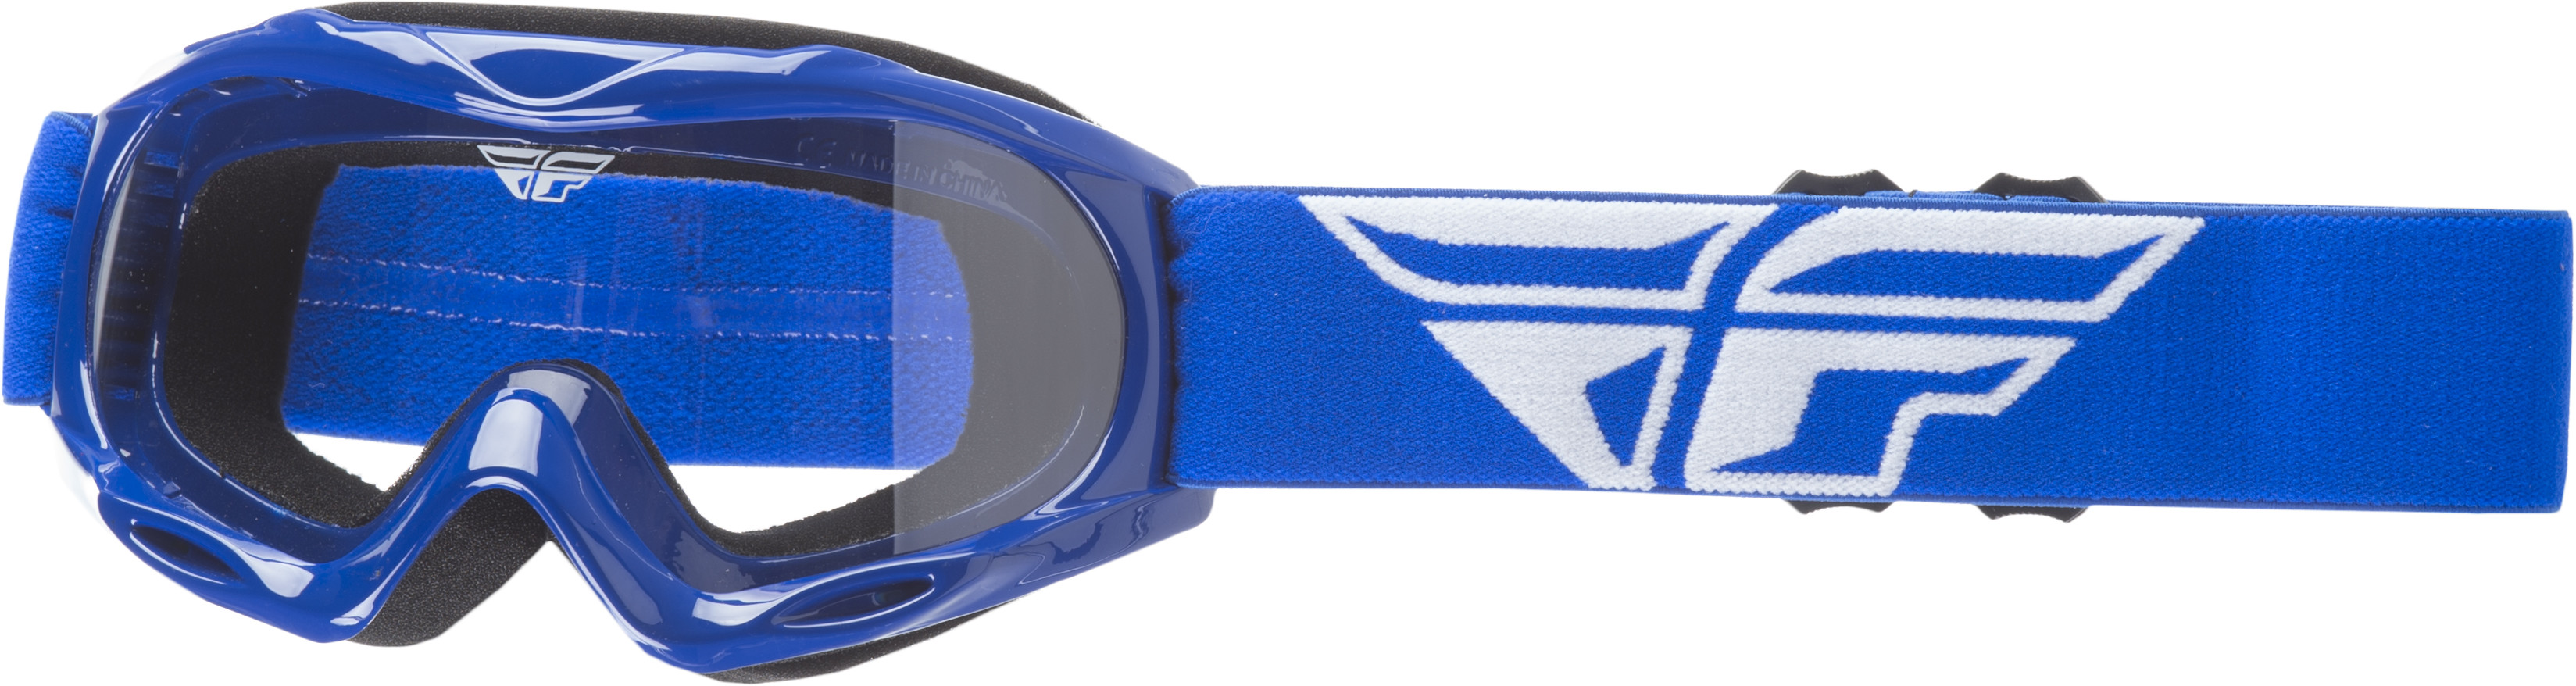 Focus Youth Goggle Blue W/ Clear Lens